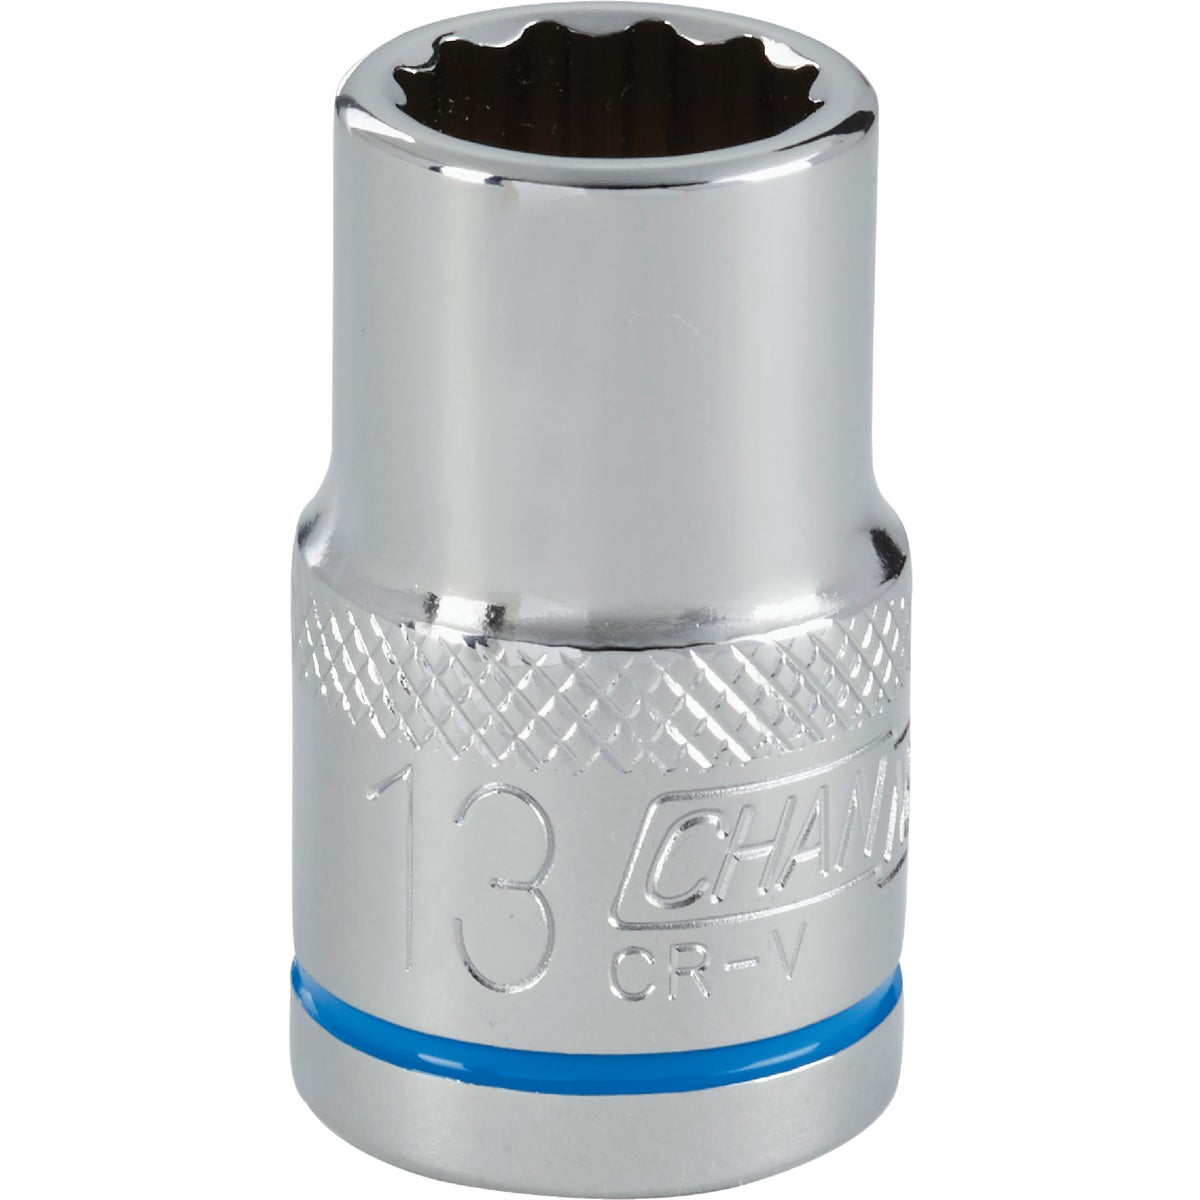 13MM 1/2 DRIVE SOCKET - 397636 by Do it Best